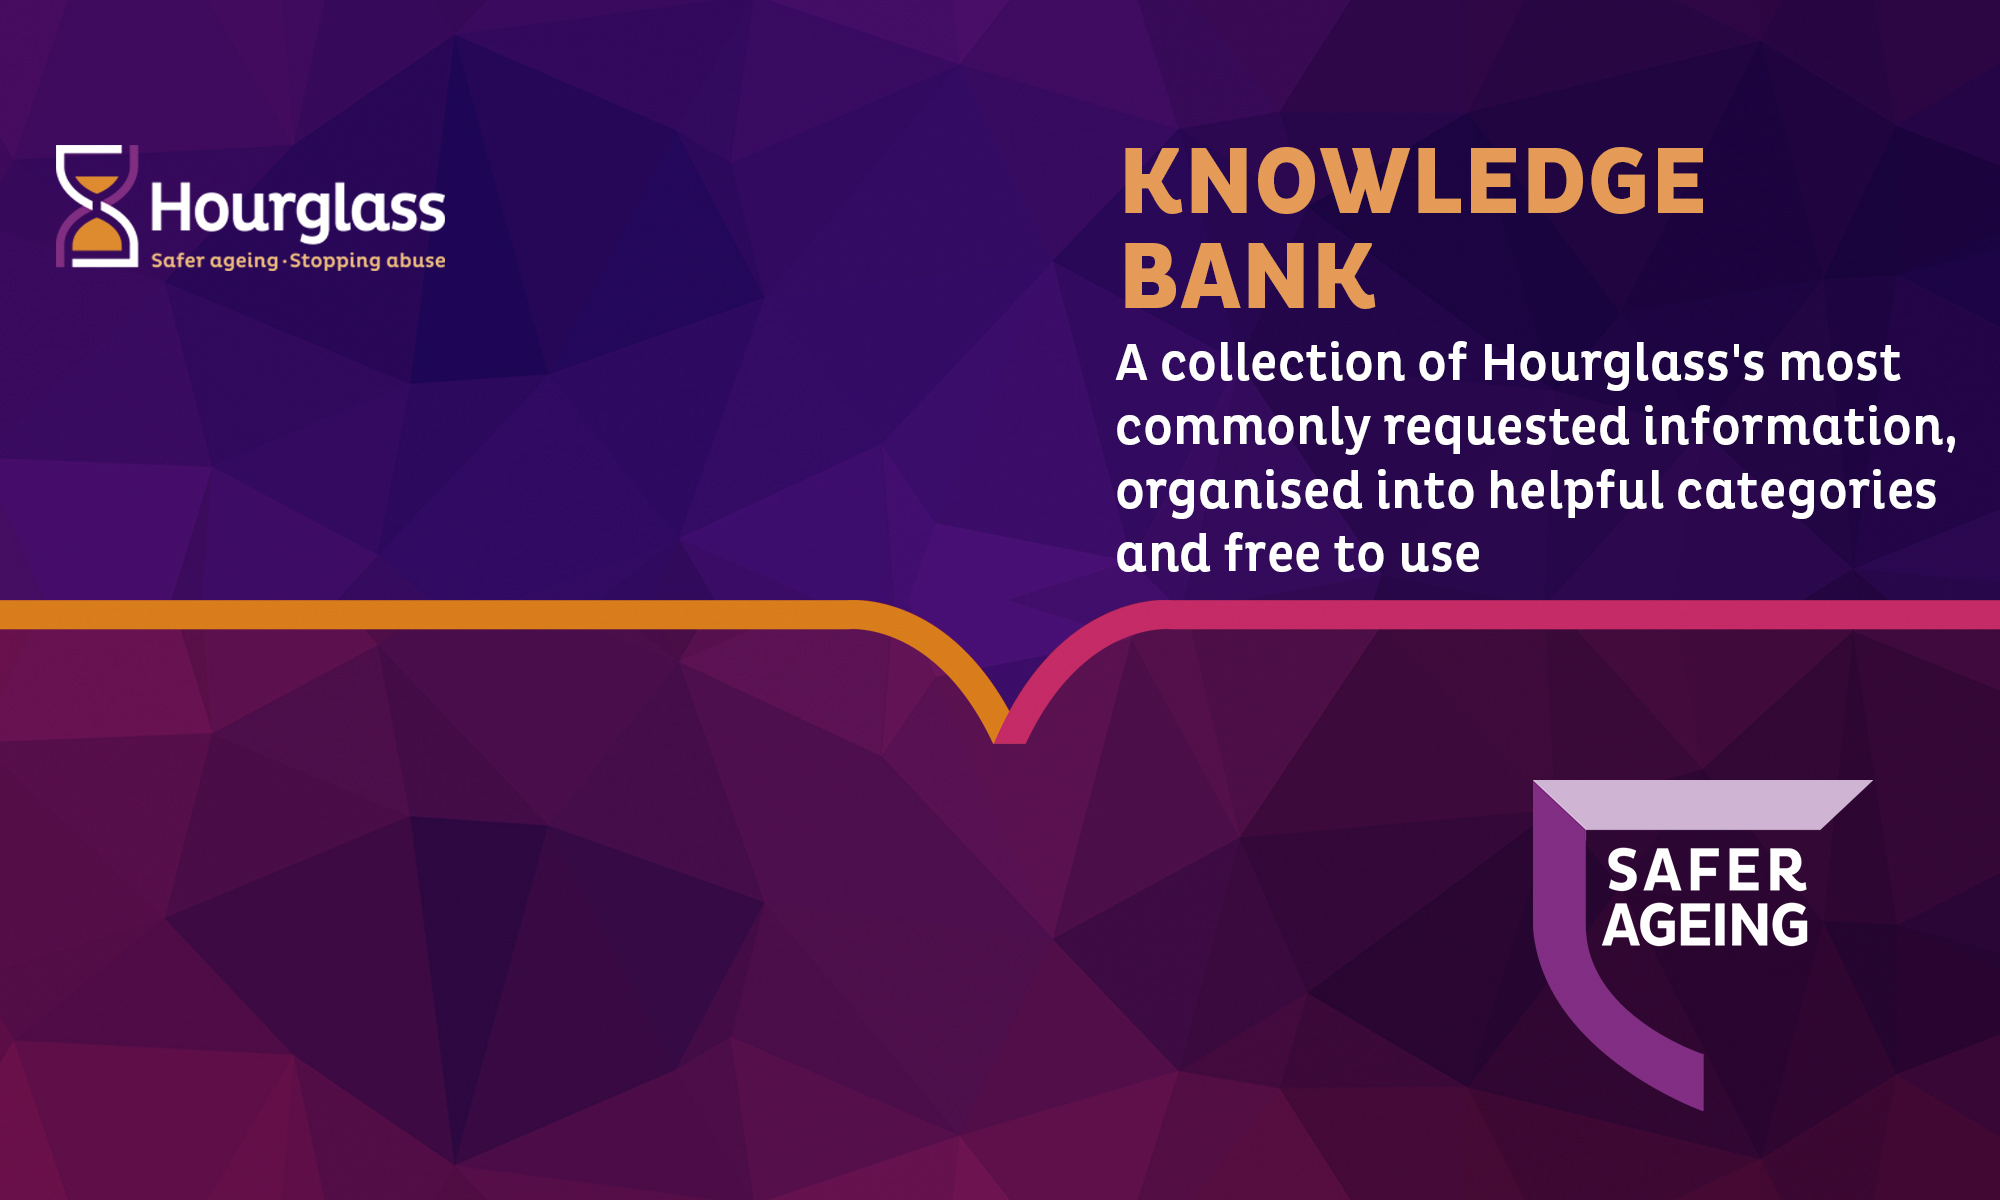 hourglass Knowledge Bank banner